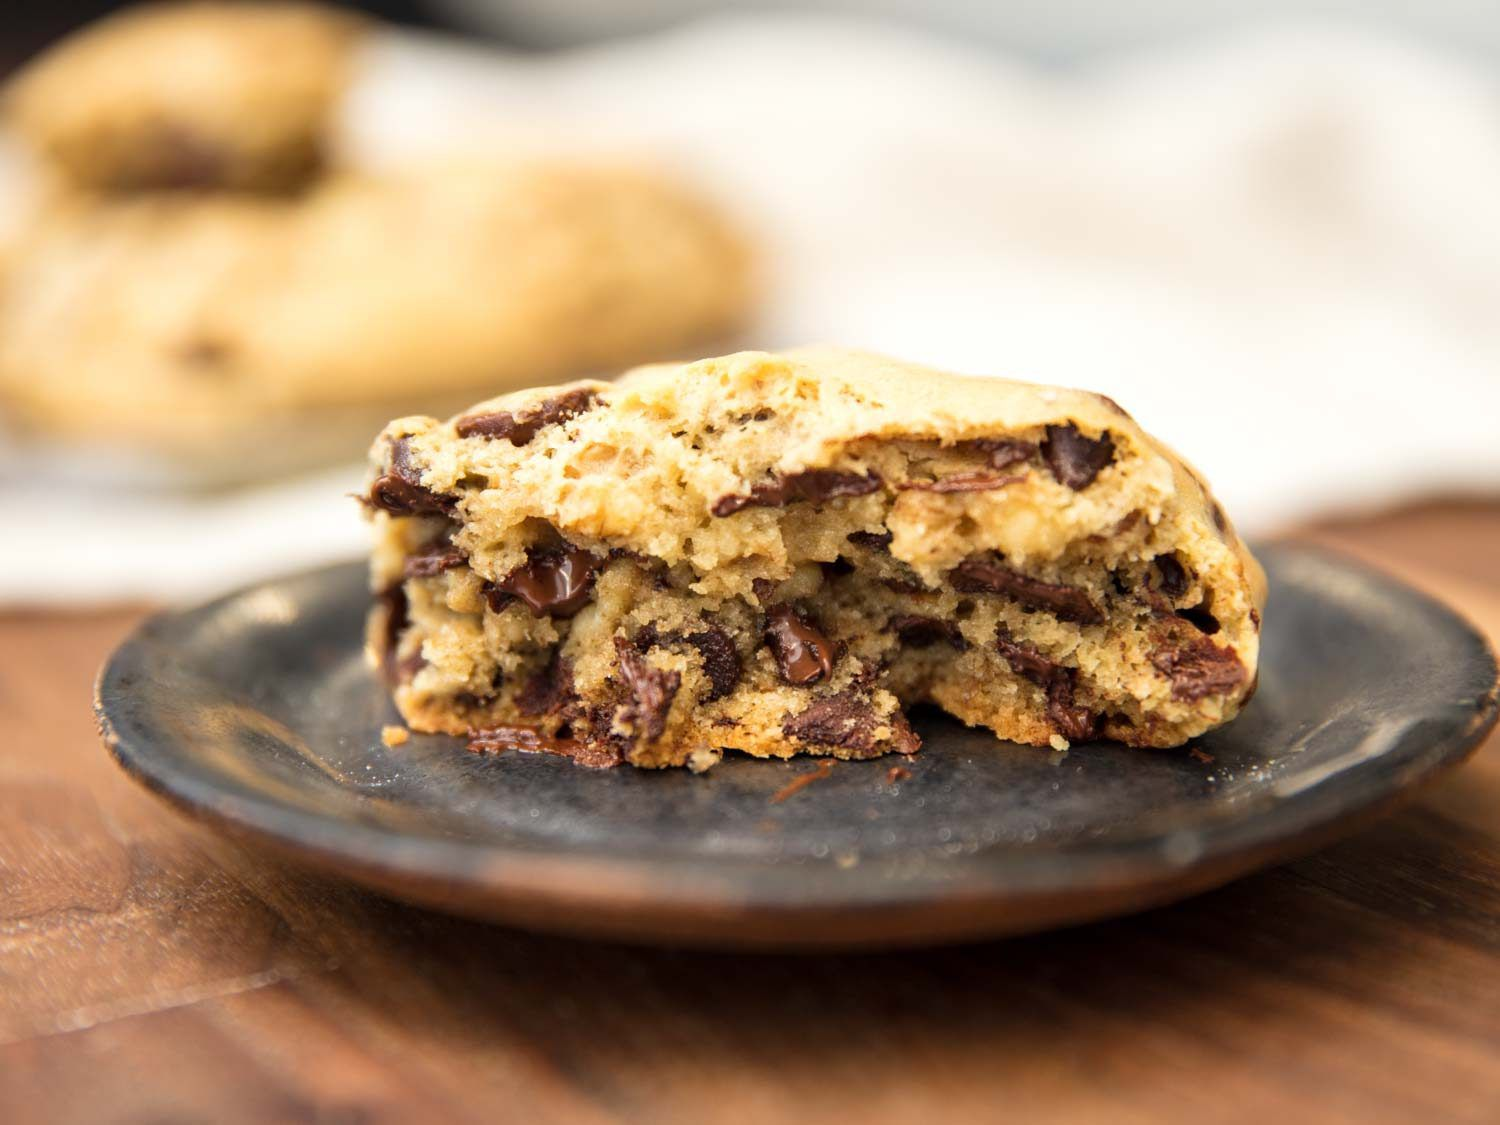 Interior of a Levain Bakery-style super thick chocolate chip cookie.